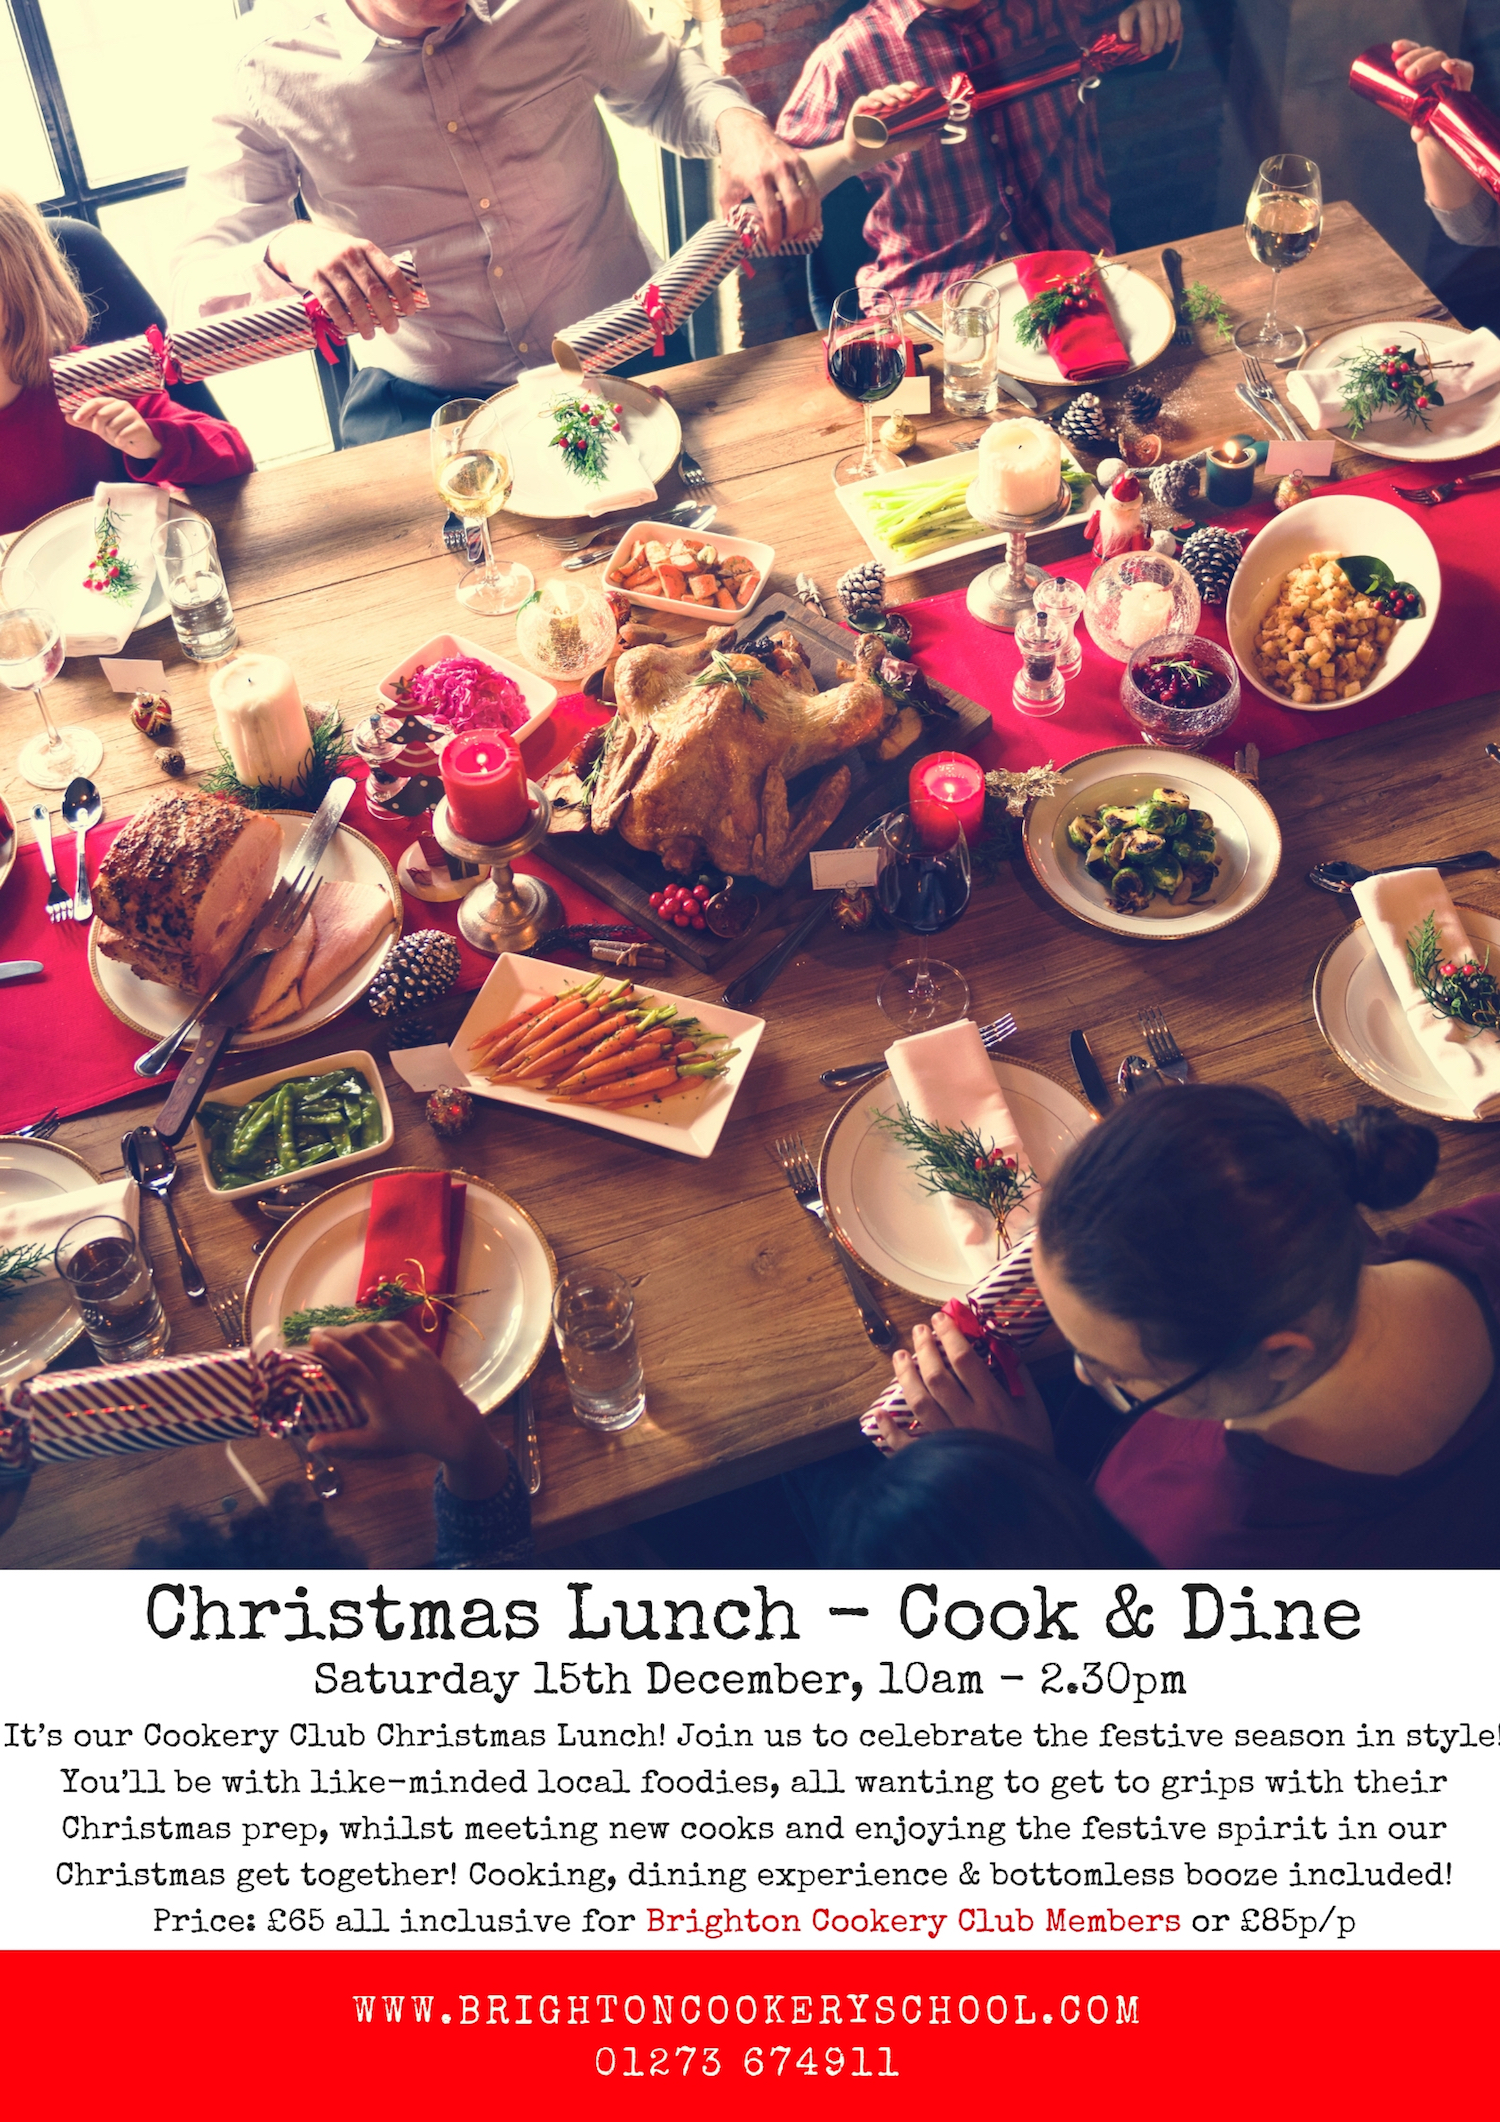 Christmas Lunch Cook & Dine